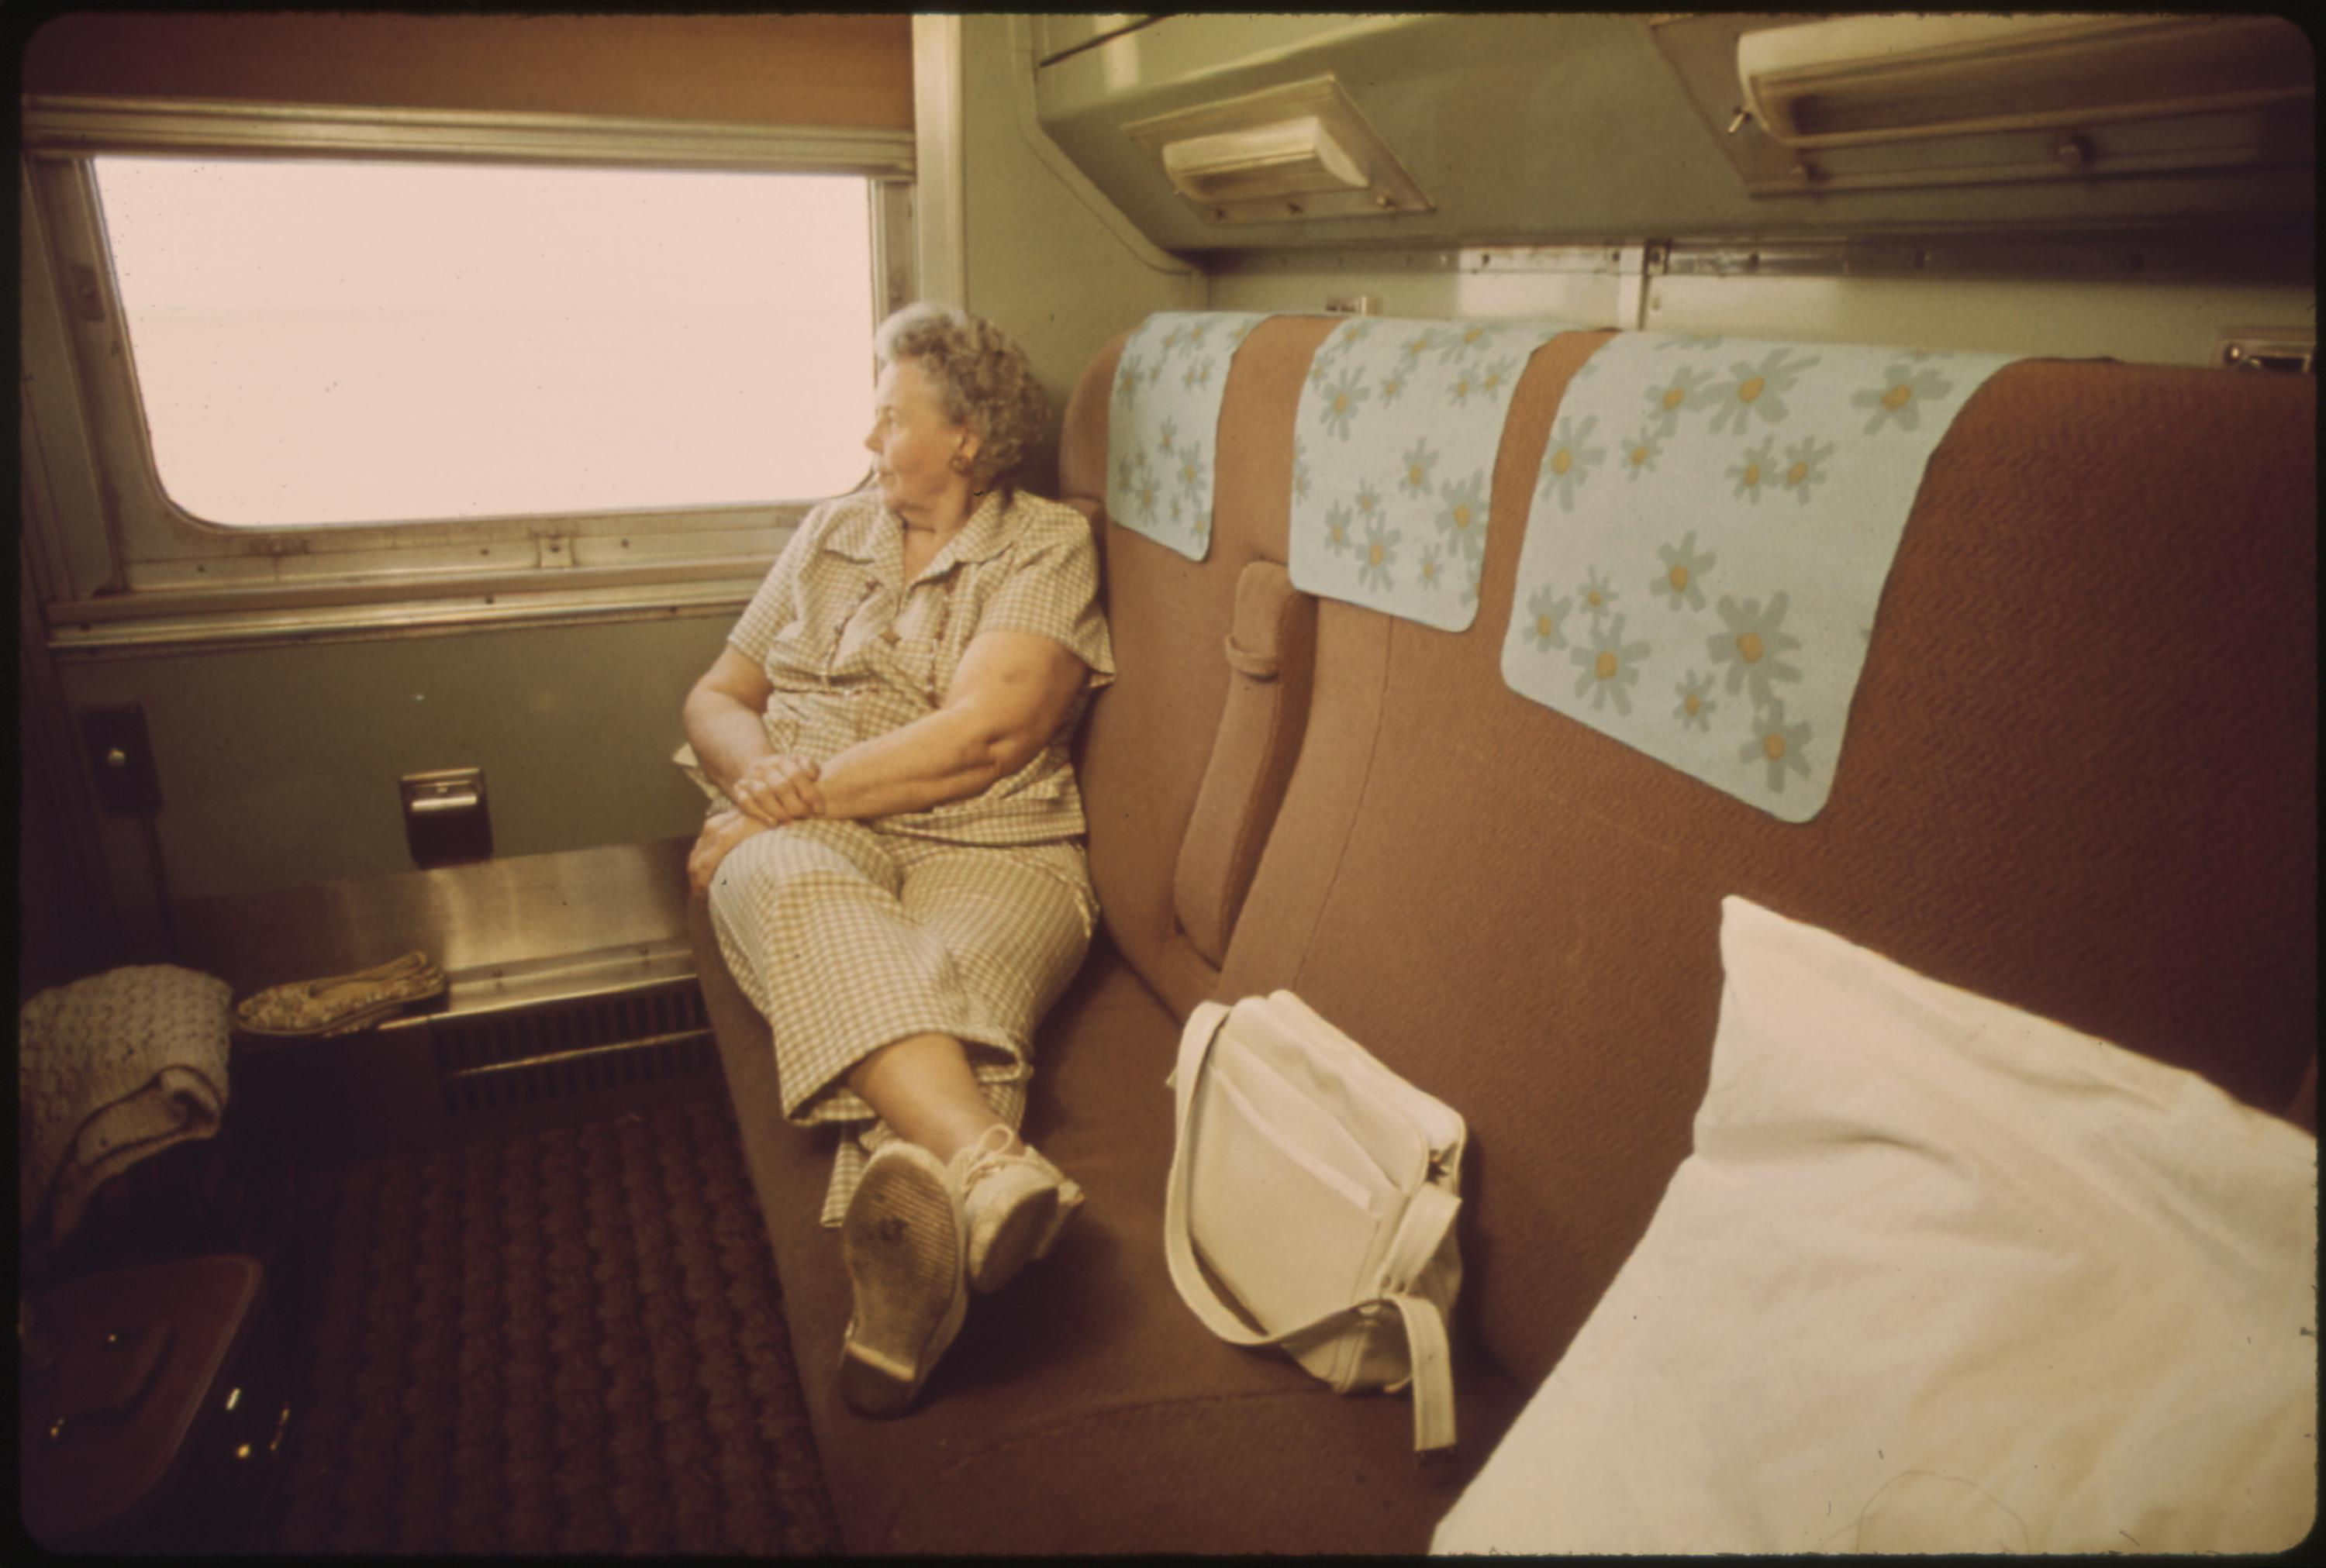 Traveler relaxes in the privacy of her compartment on the Empire Builder passenger train enroute from Chicago to East Glacier Park, Montana, and Seattle, Washington, June 1974